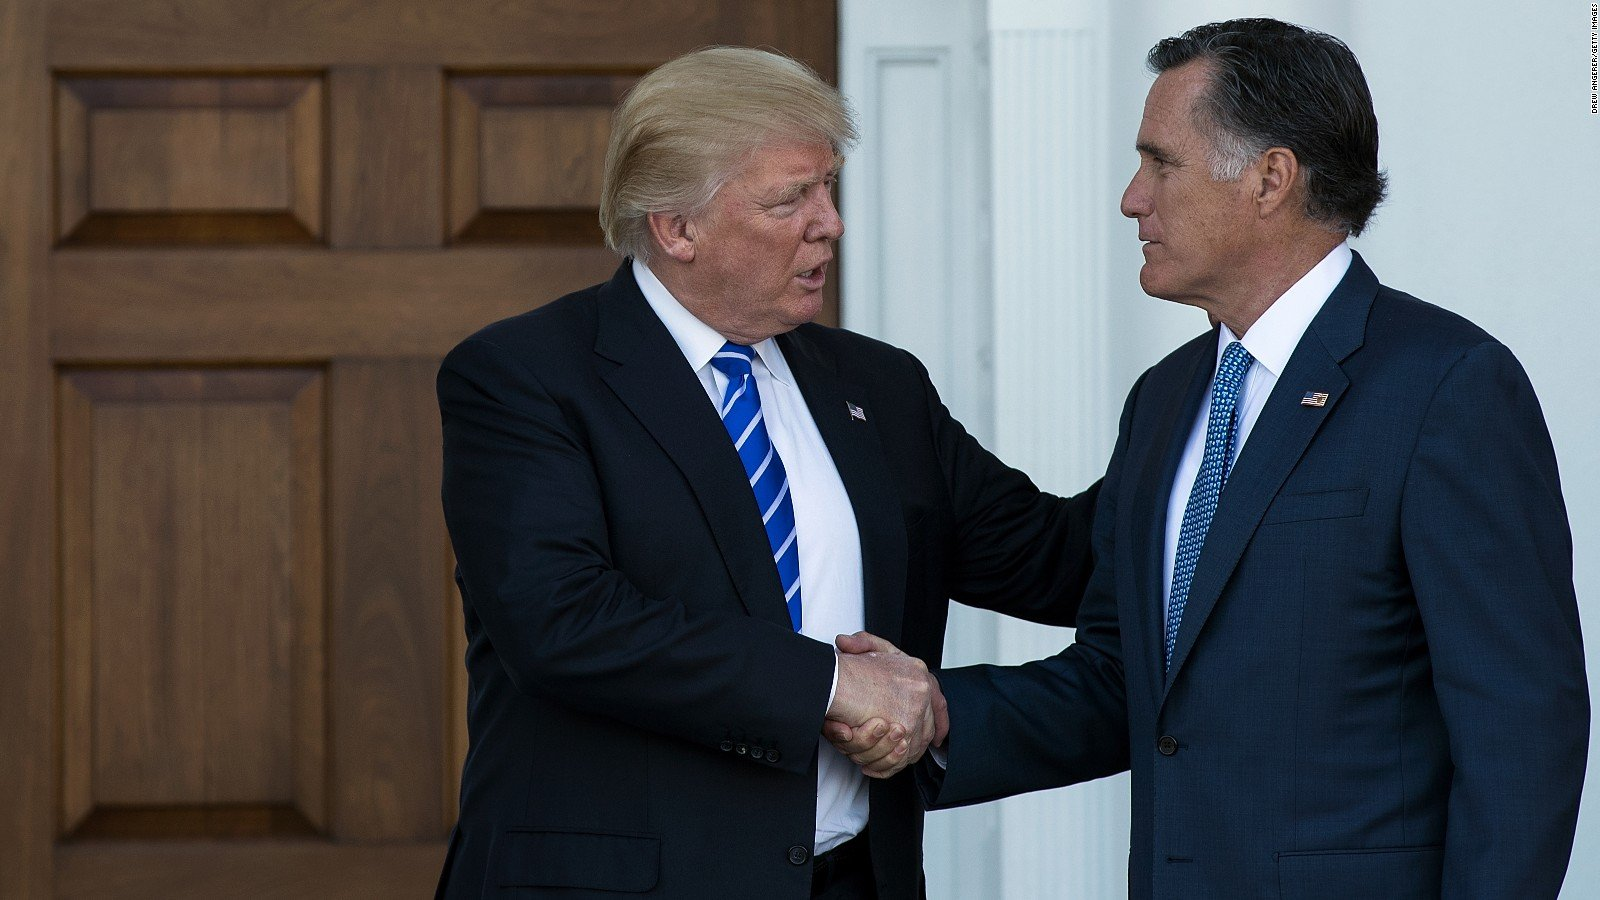 Mitt Romney has officially entered the race to become Utah's next U.S. senator. In a video released on Twitter, the 2012 Republican presidential nominee announced his intention to succeed the retiring Sen. Orrin Hatch, a fellow Republican. I am running for United States Senate to serve the people of Utah and bring Utah's values to …